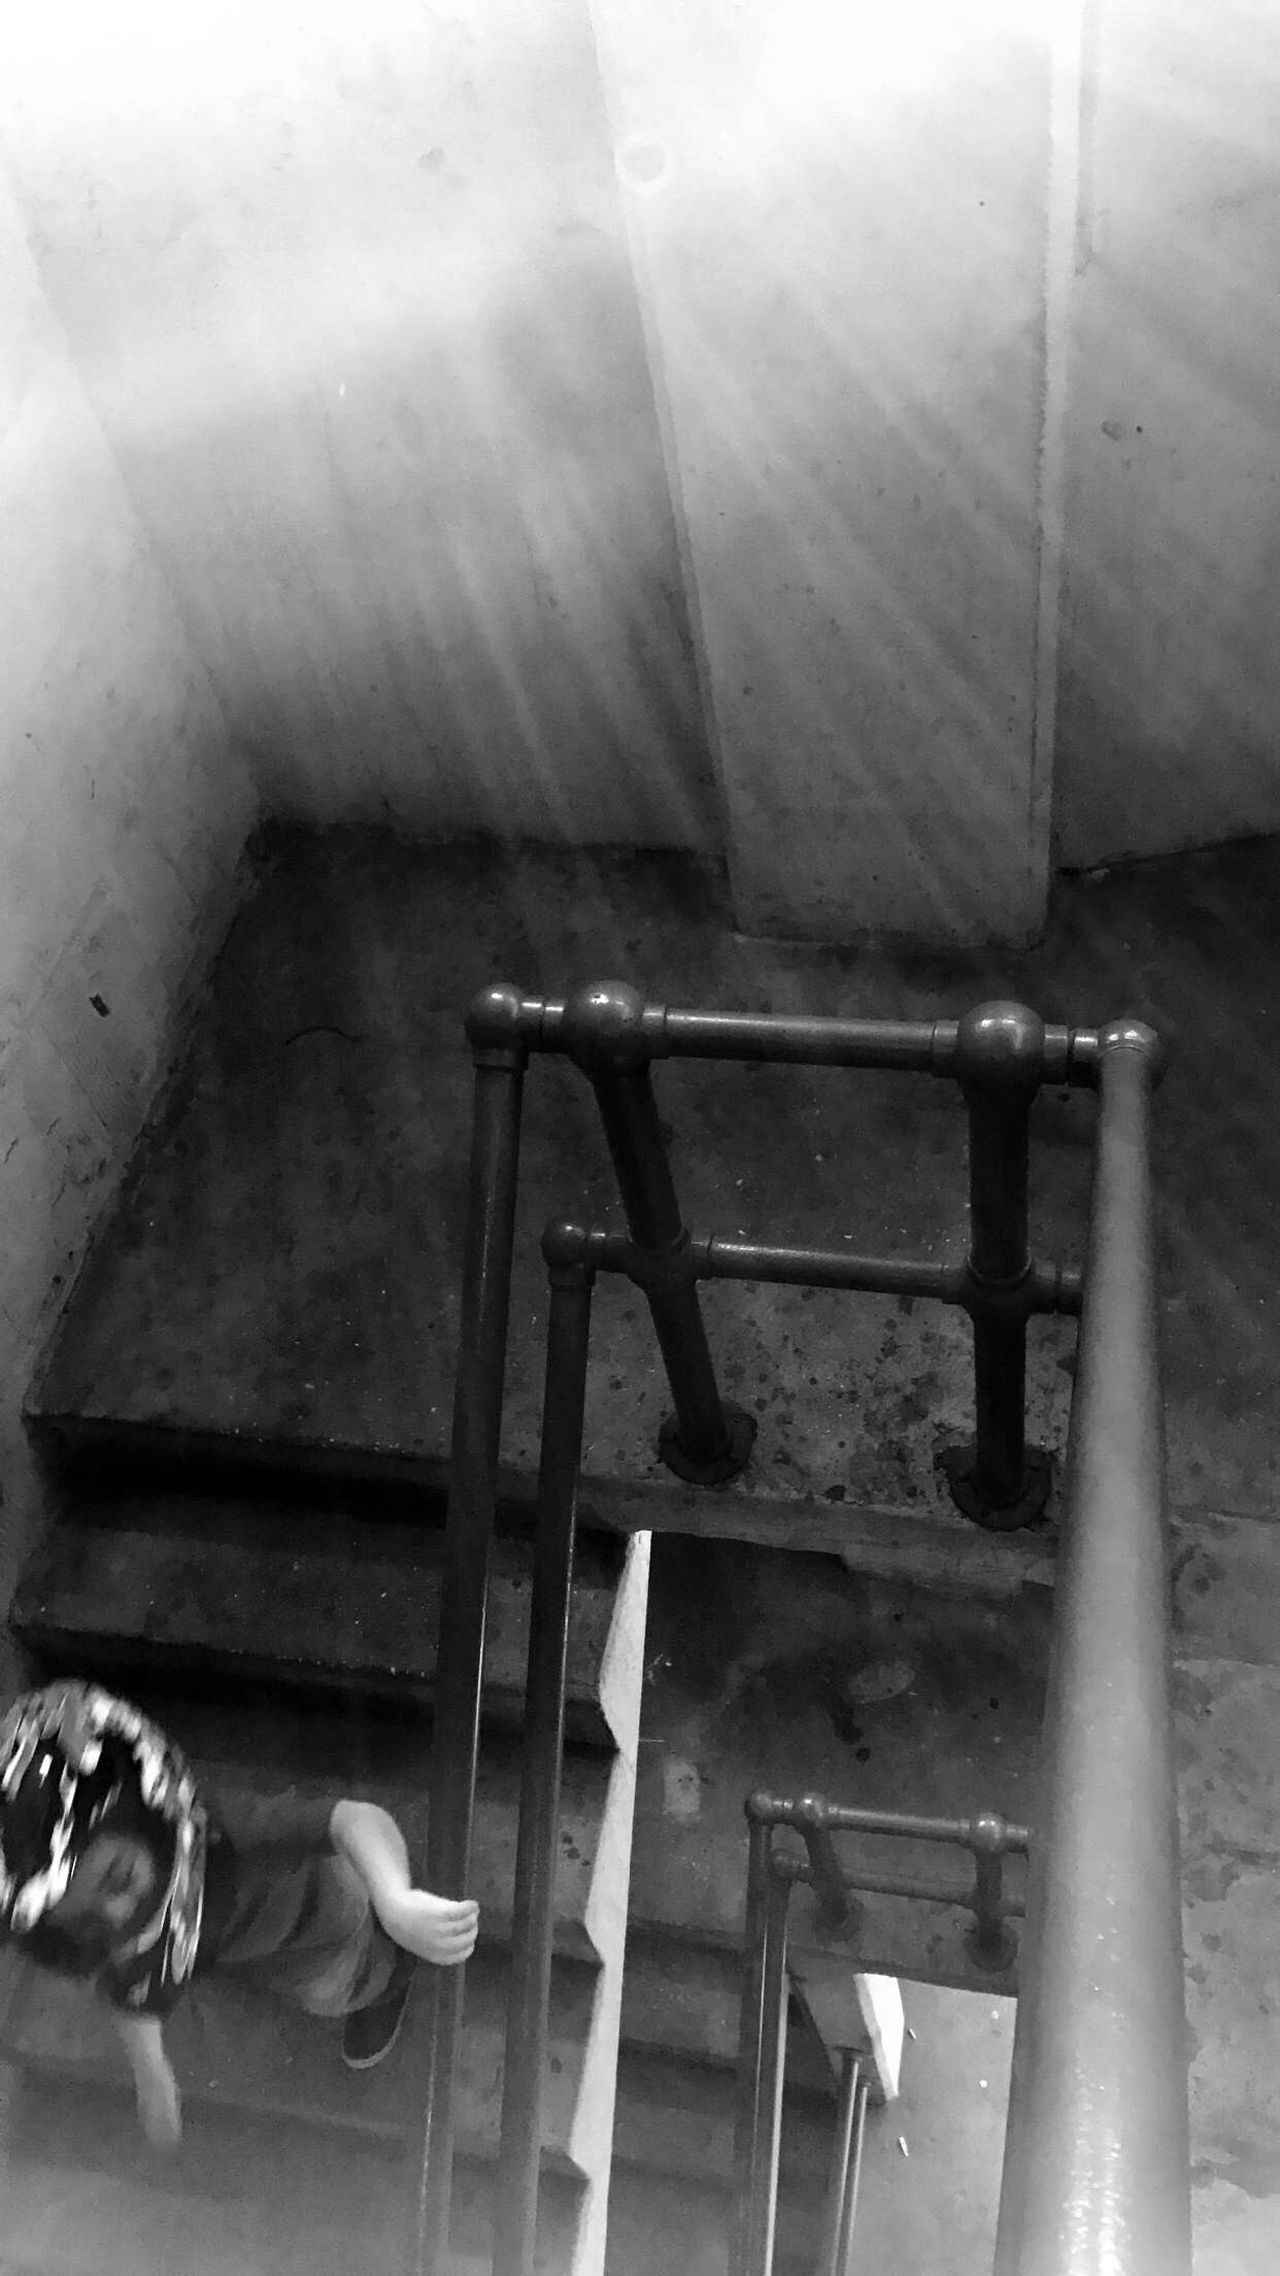 Lights And Shadows Bnw Bnw_society Bnw_captures Motion Dtjax Stairwells Studio3b The Union 904 Downtown EyeEmNewHere